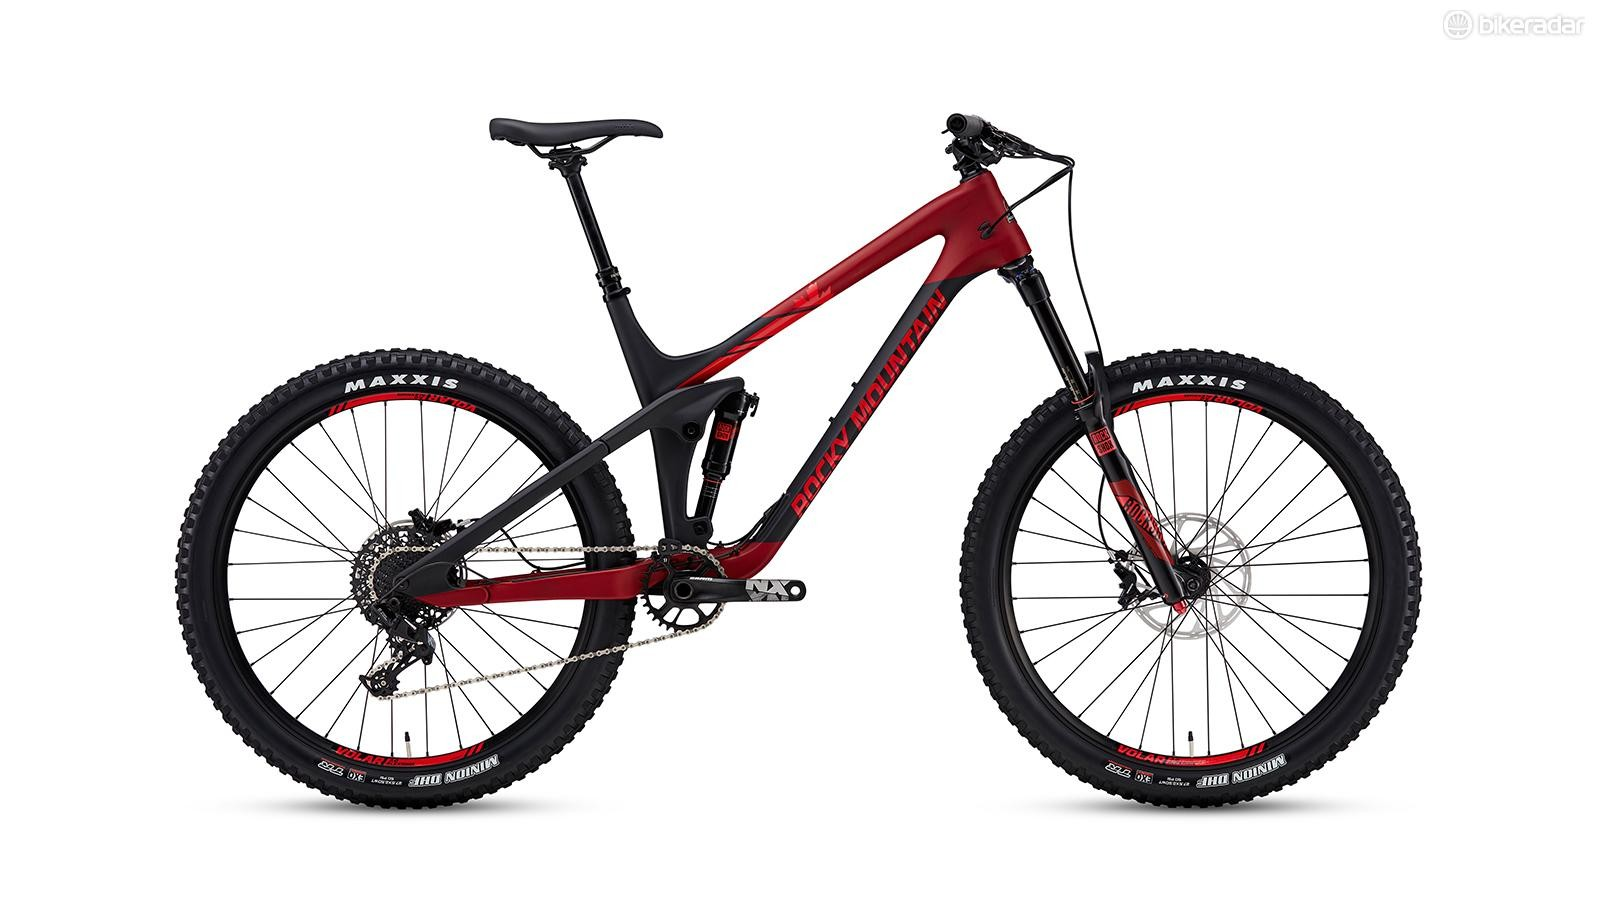 The entry-level model is the Slayer 730 MSL. Given the price of admission, and the fact it shares the same frame as the top-end bike, this looks like a great option for riders looking to get their start in enduro racing. The 730 sports a 170mm RockShox Yari RC fork with a Deluxe Debonair RT shock. SRAM's entry-level 1x NX drivetrain and Guide R brakes keep the price low.